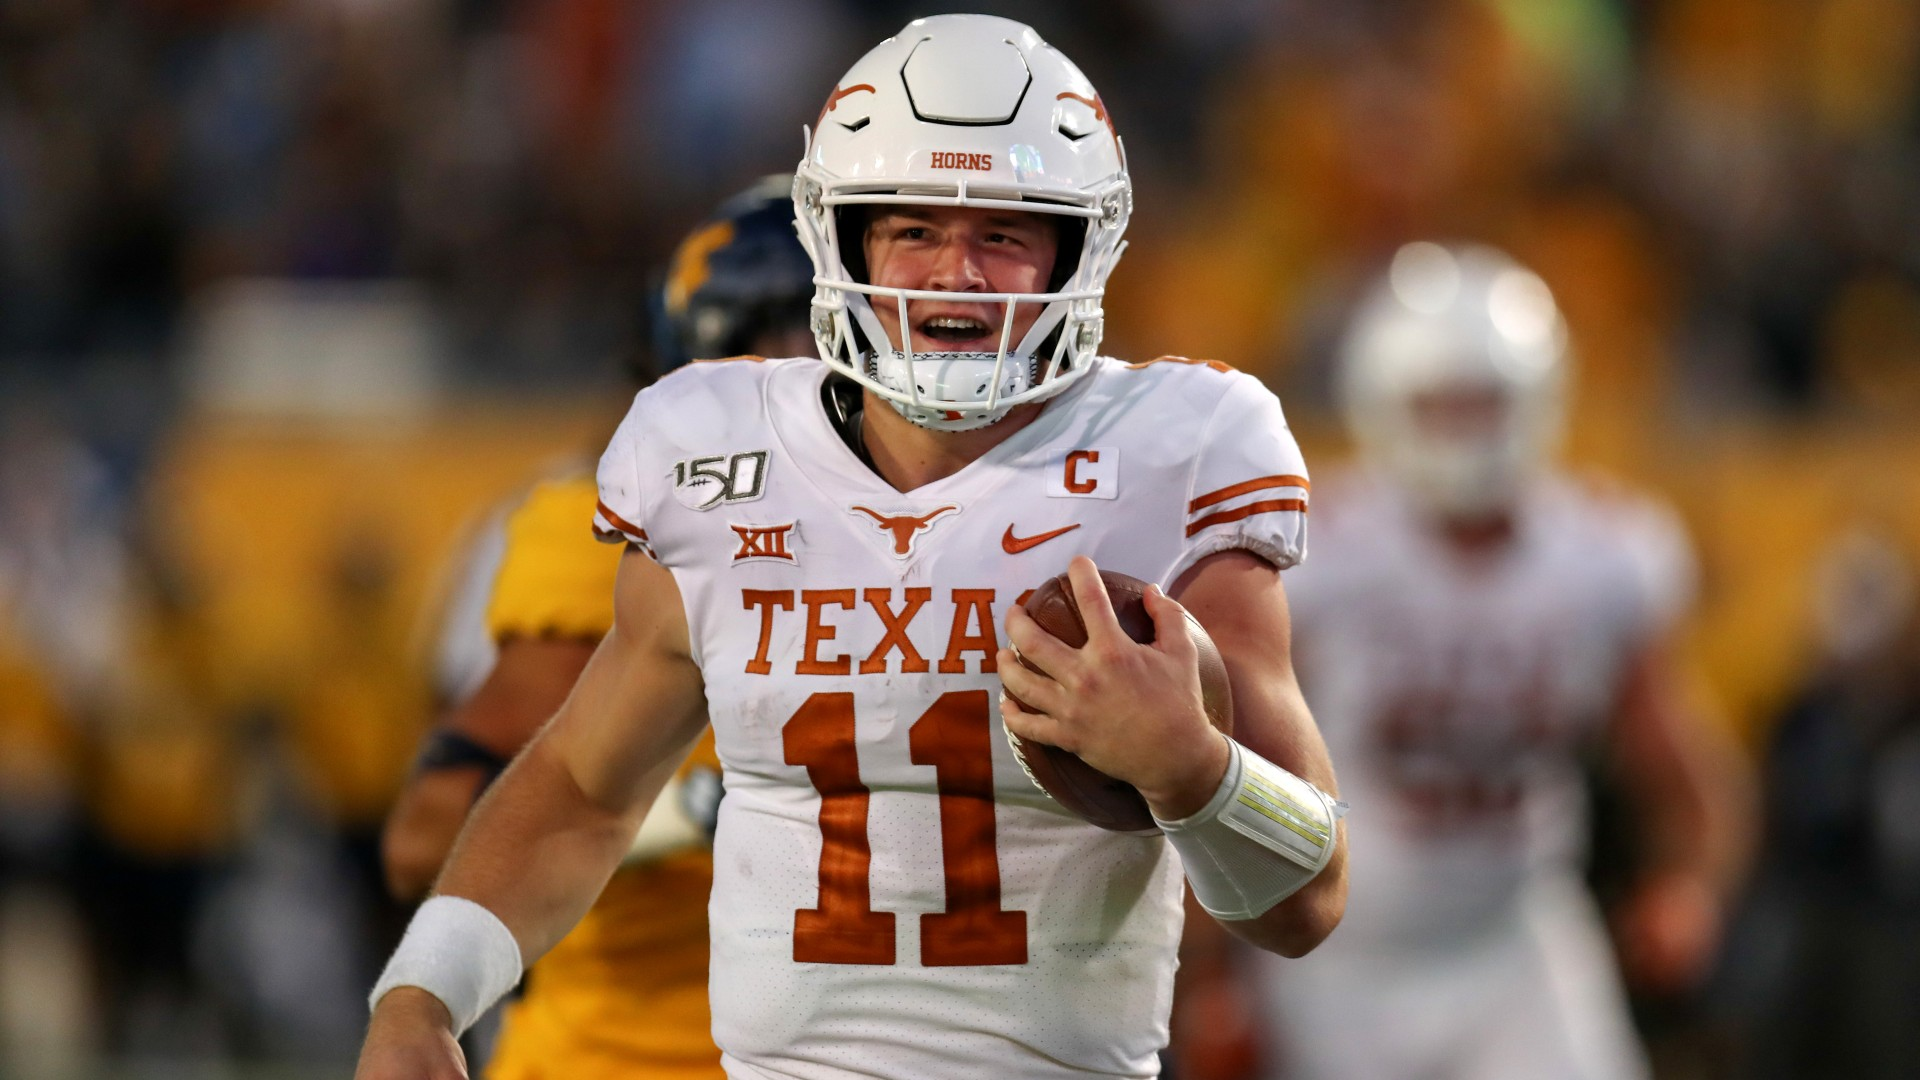 Wvu vs texas betting line what bearish investors are betting against apple